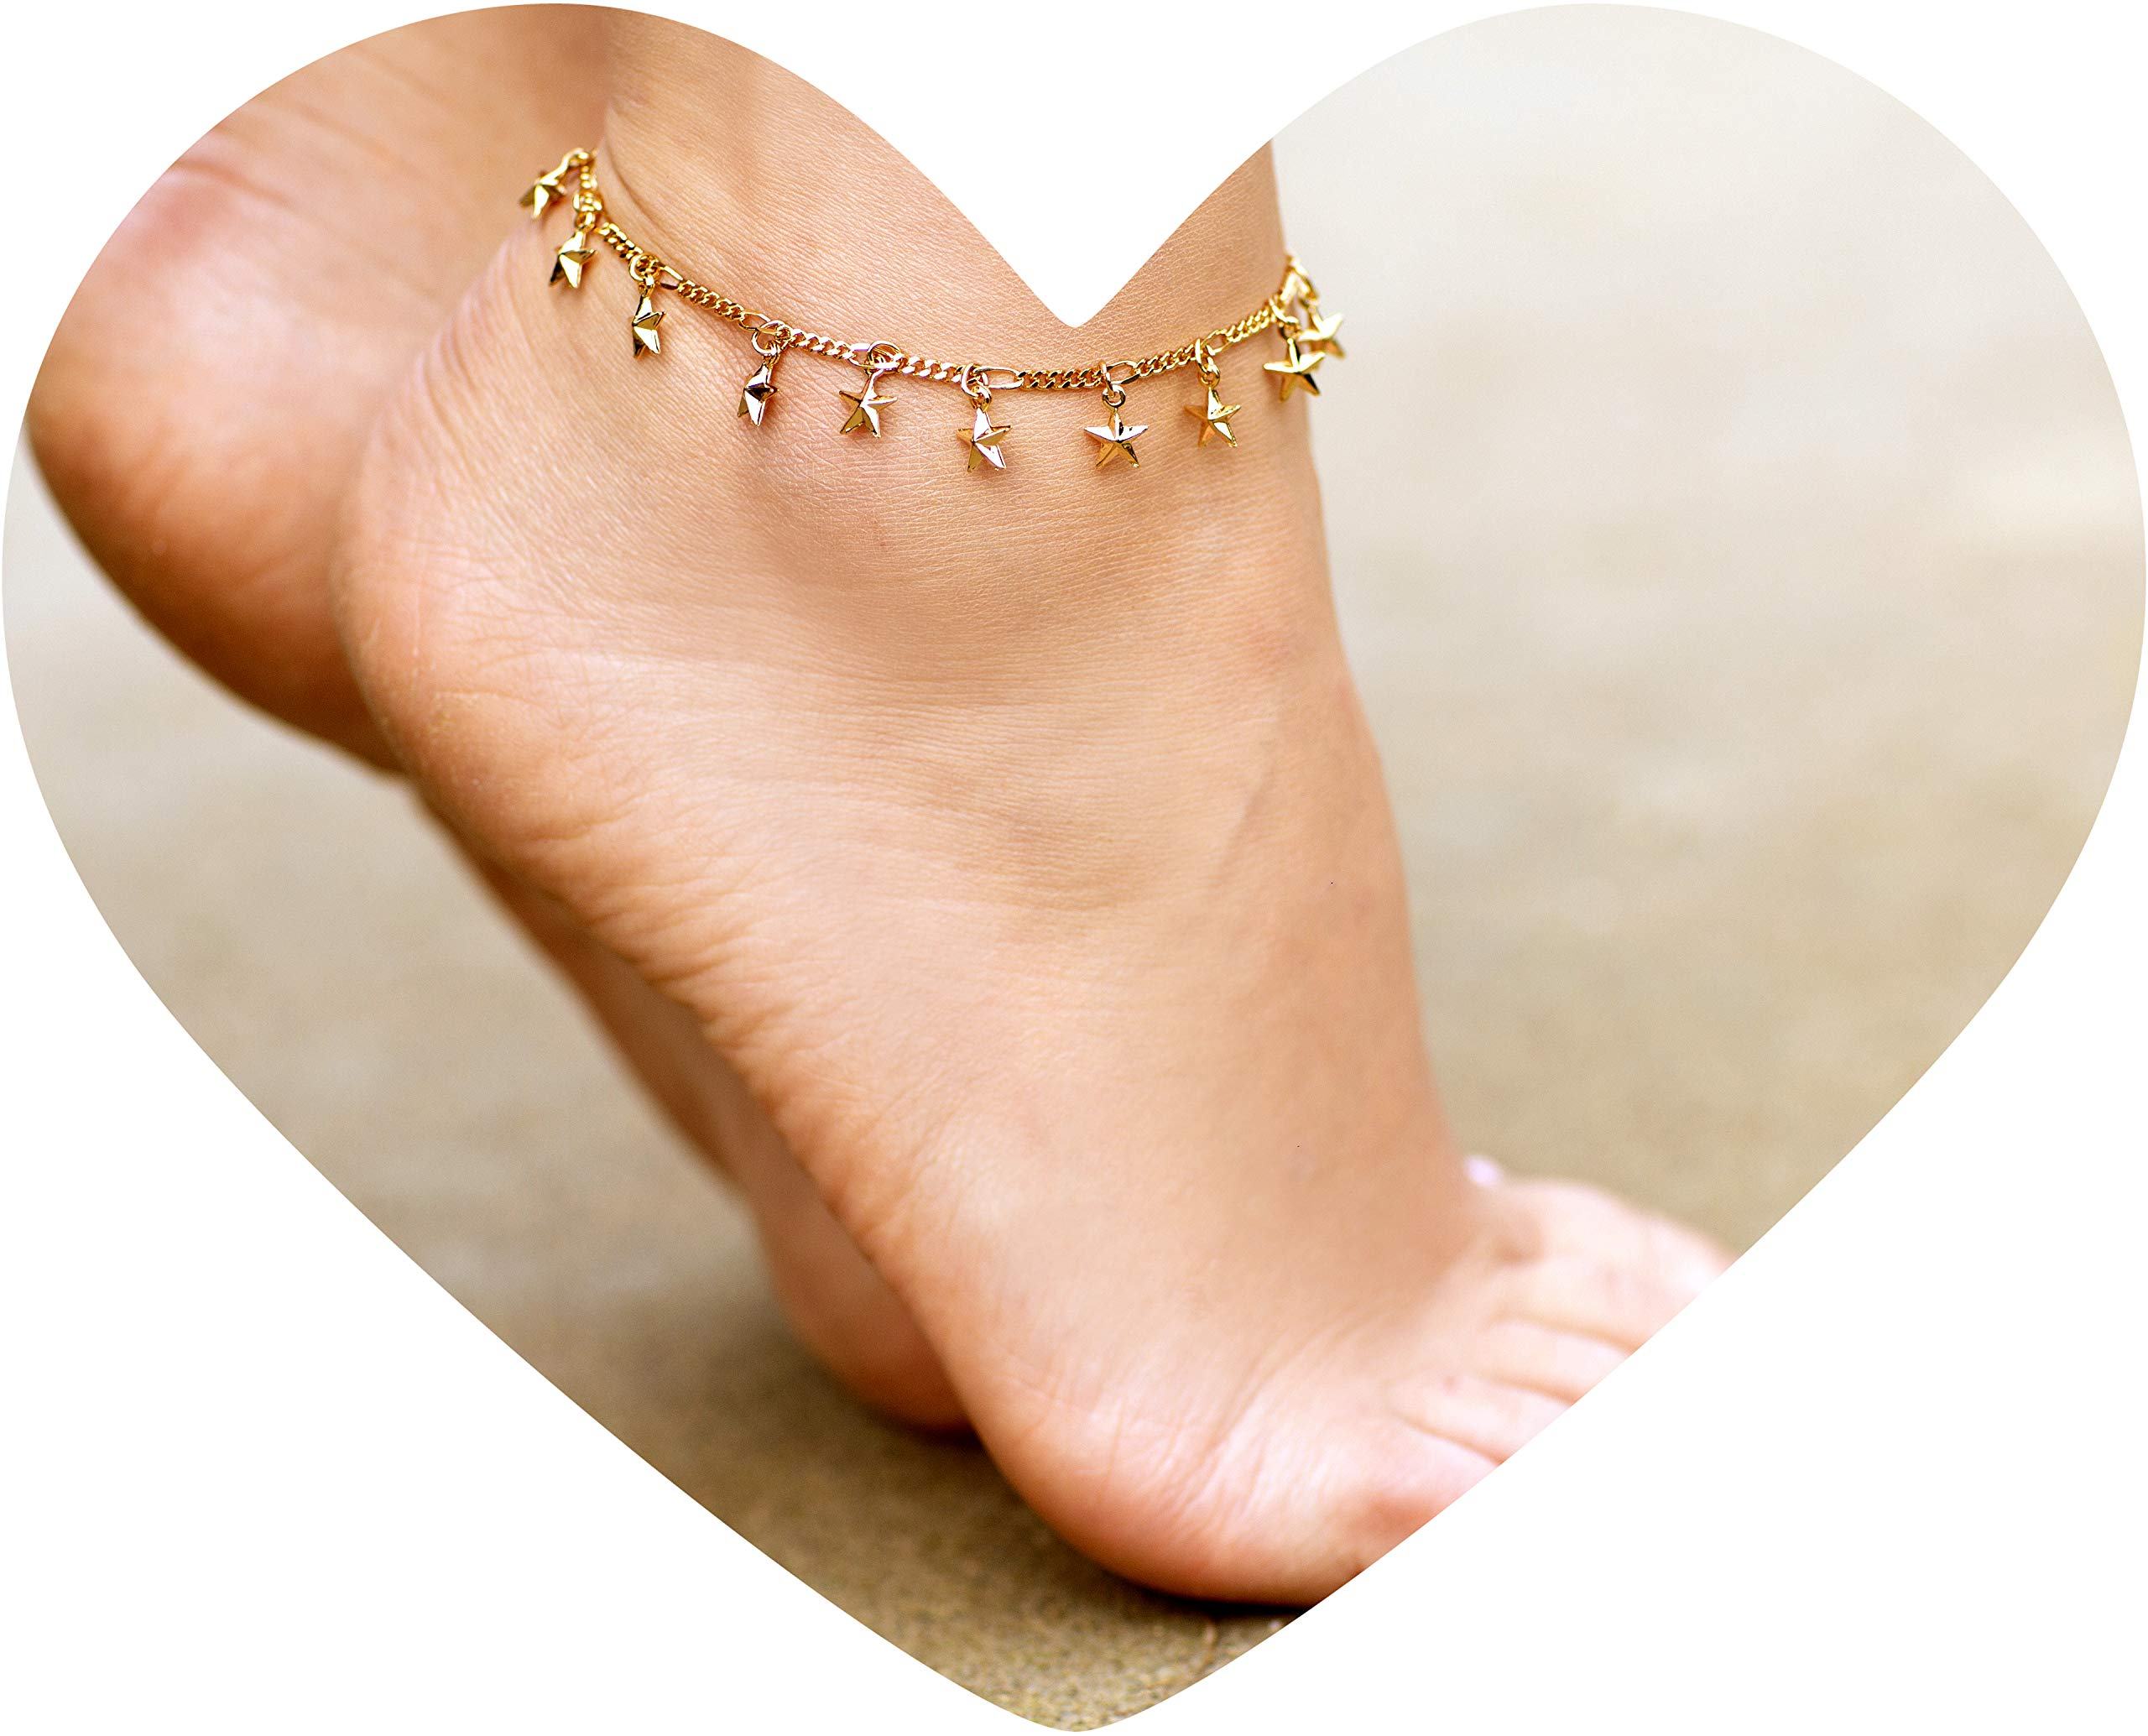 Lifetime Jewelry Anklets for Women Men and Teen Girls - 24K Gold Plated Chain with Dangling Stars - Ankle Bracelet to Wear at Beach or Party - Cute Surfer Anklet - 9 10 and 11 inches (10)